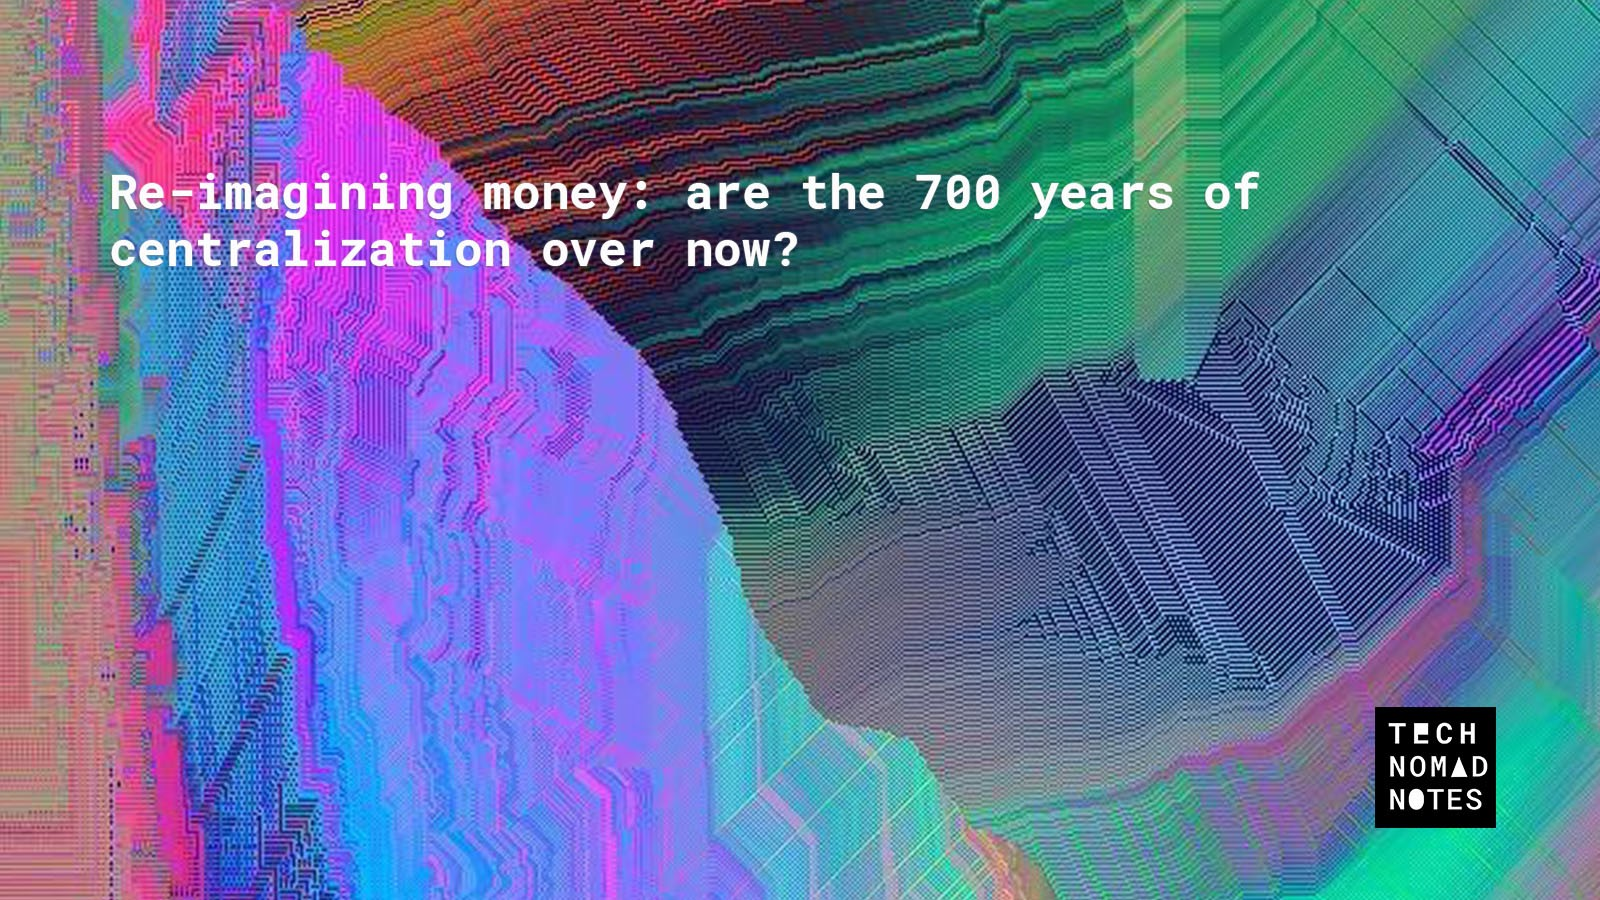 /re-imagining-money-are-the-700-years-of-centralization-over-now-be97979d30f9 feature image